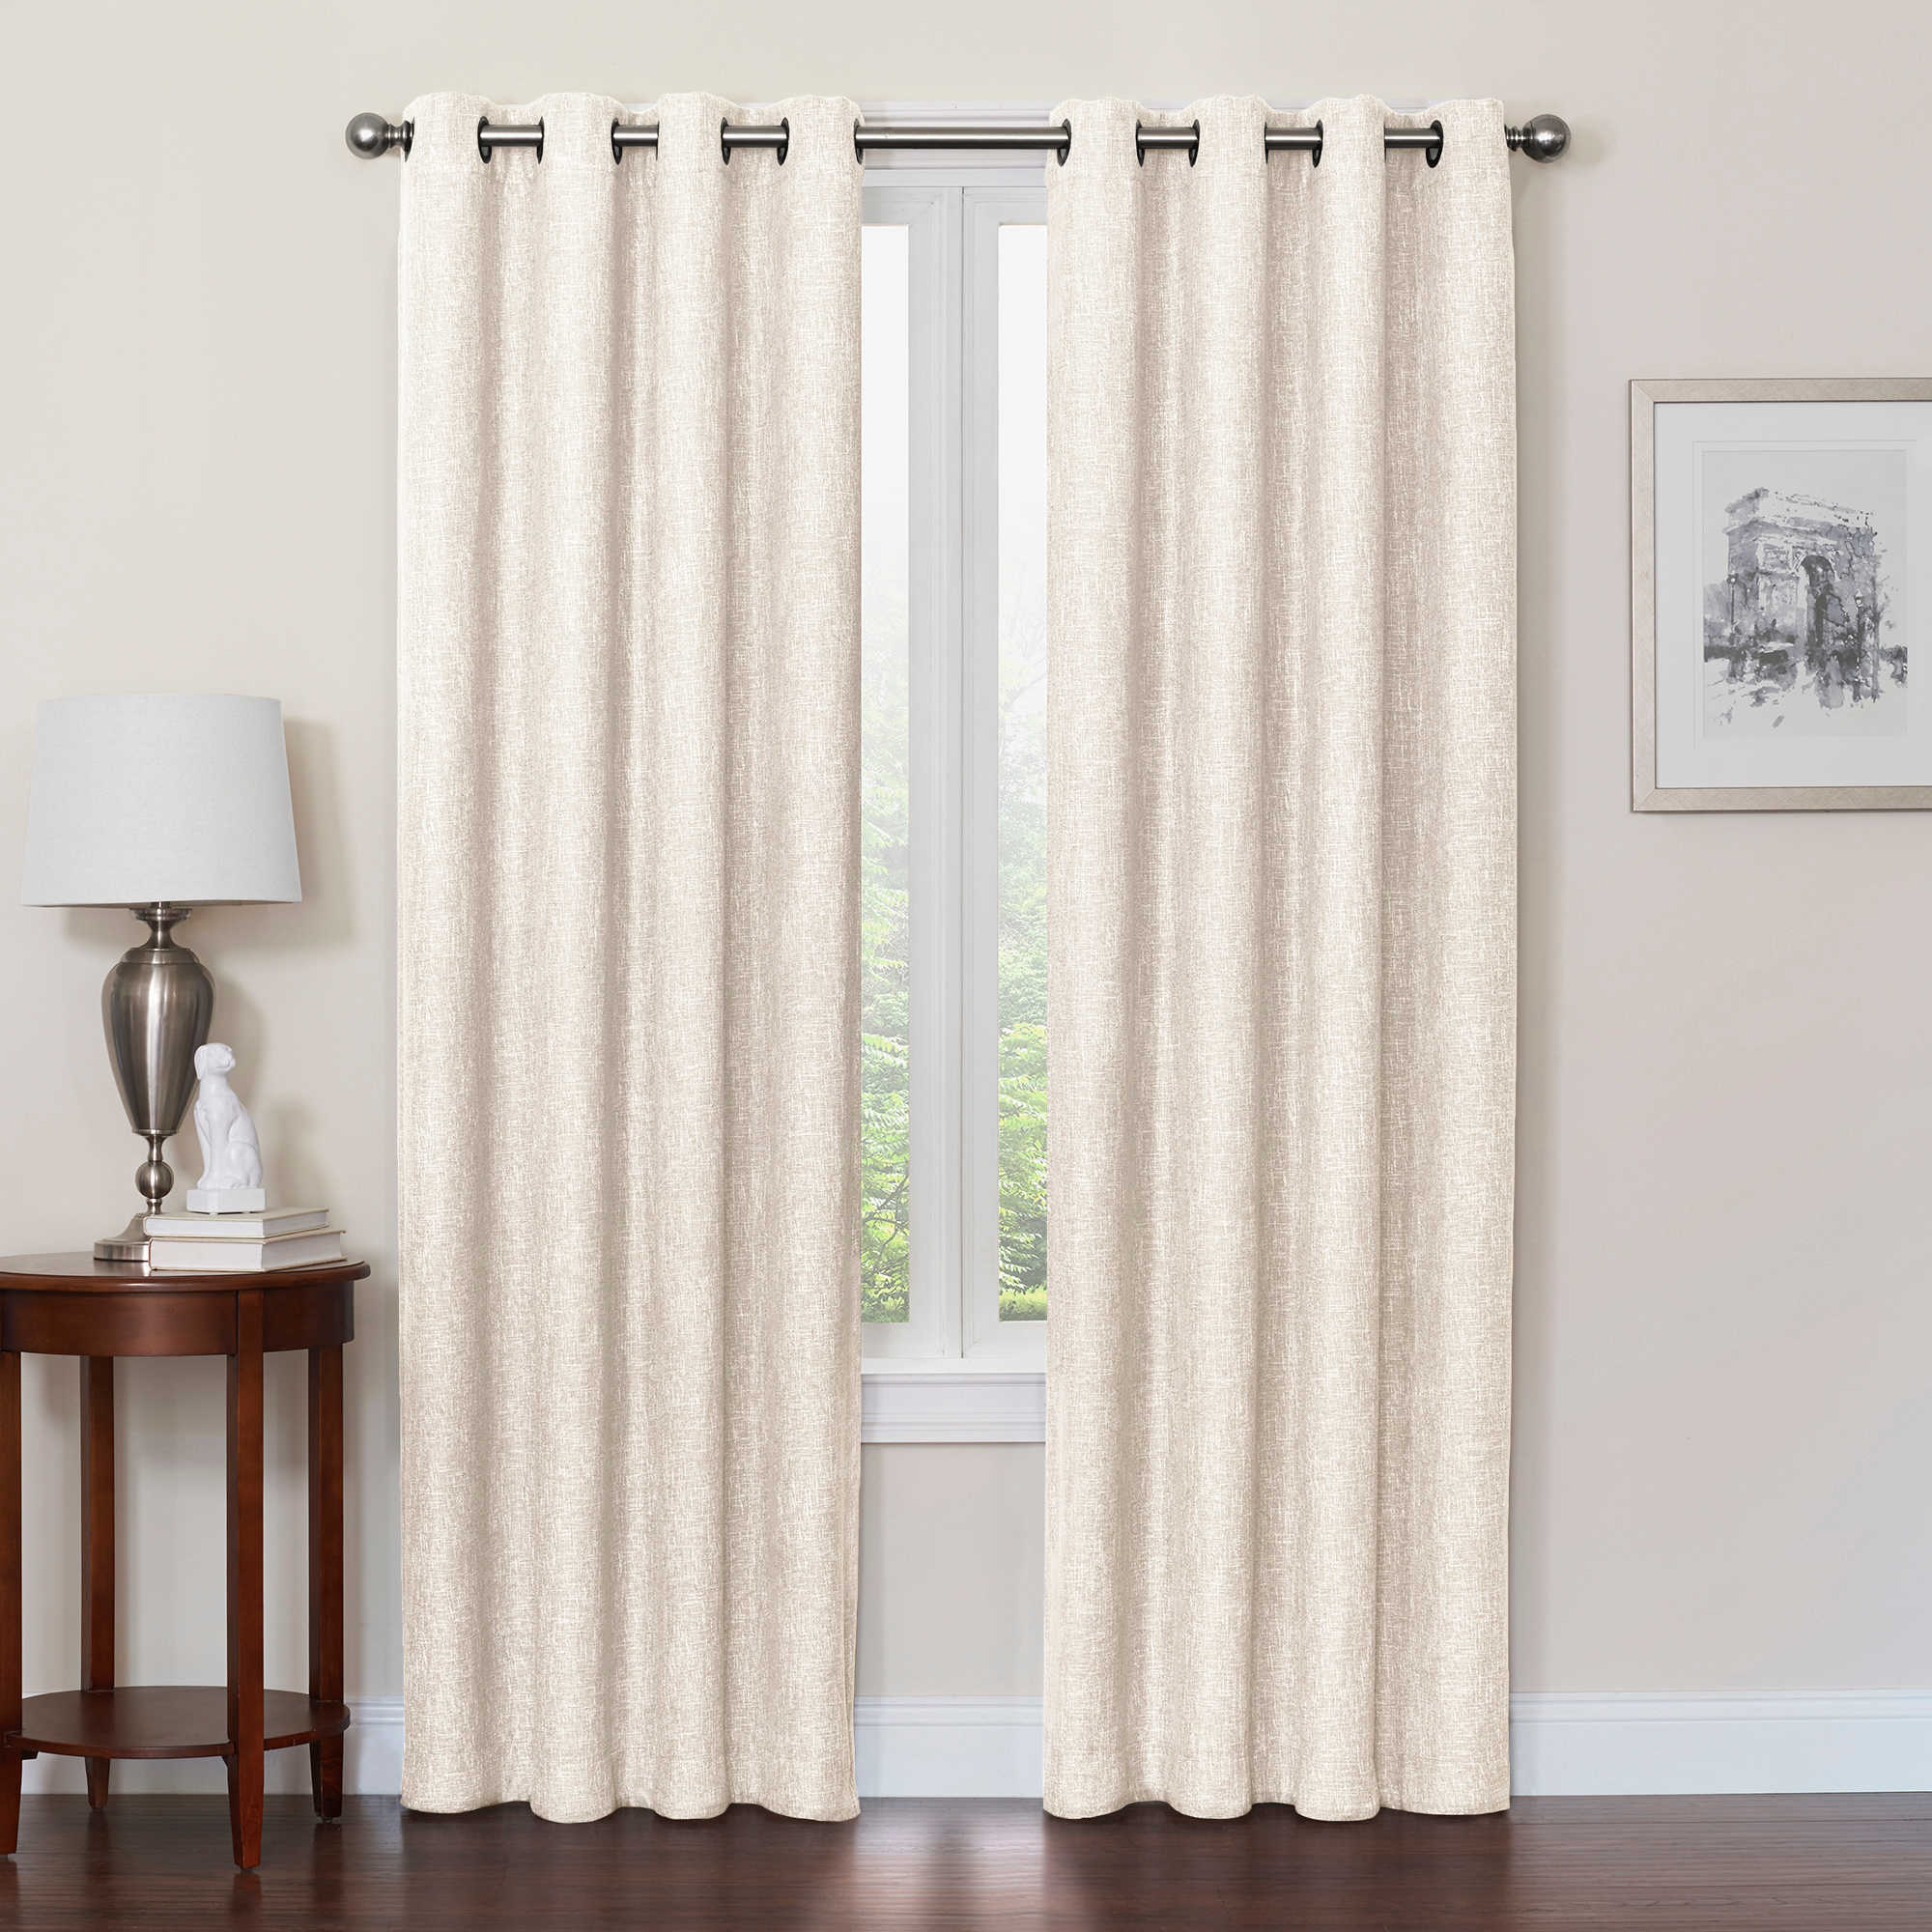 Home gt features amp occasions gt blackout curtains blackout luxury - Image Of Quinn Grommet Top 100 Blackout Window Curtain Panel